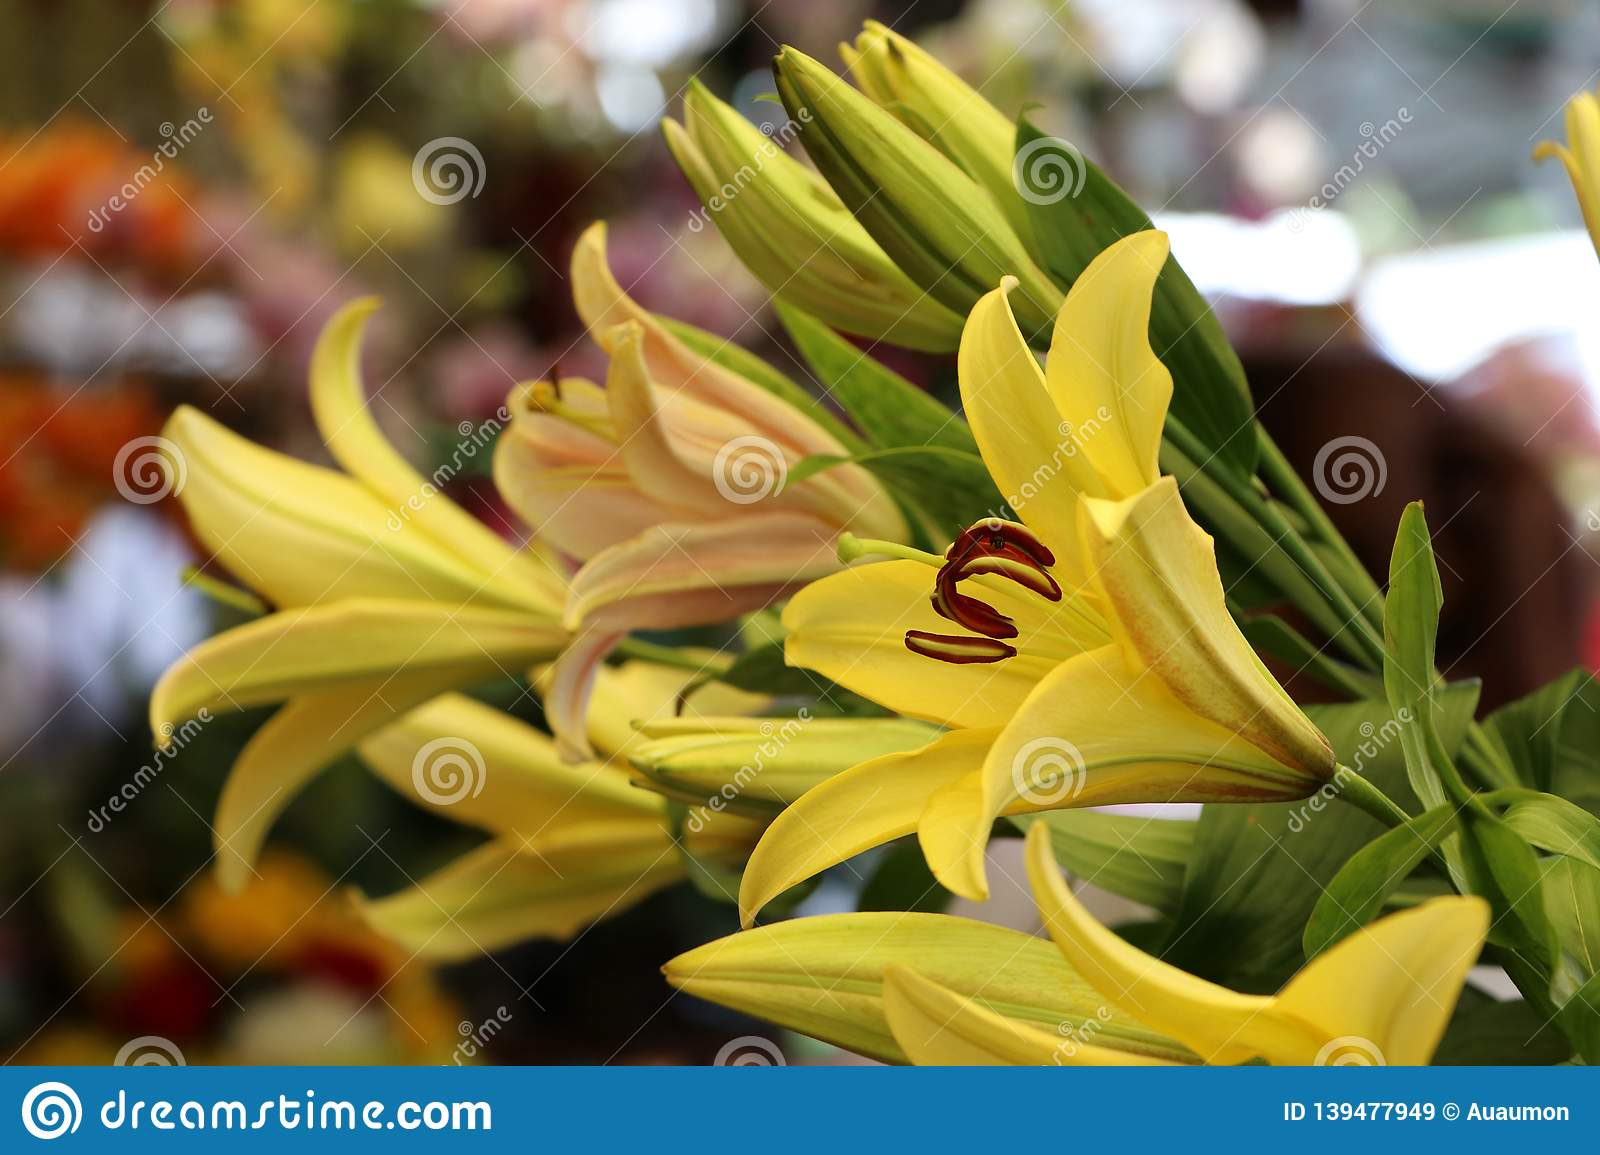 Yellow Elegant Stargazer Lily Beautiful Flowers on blur background